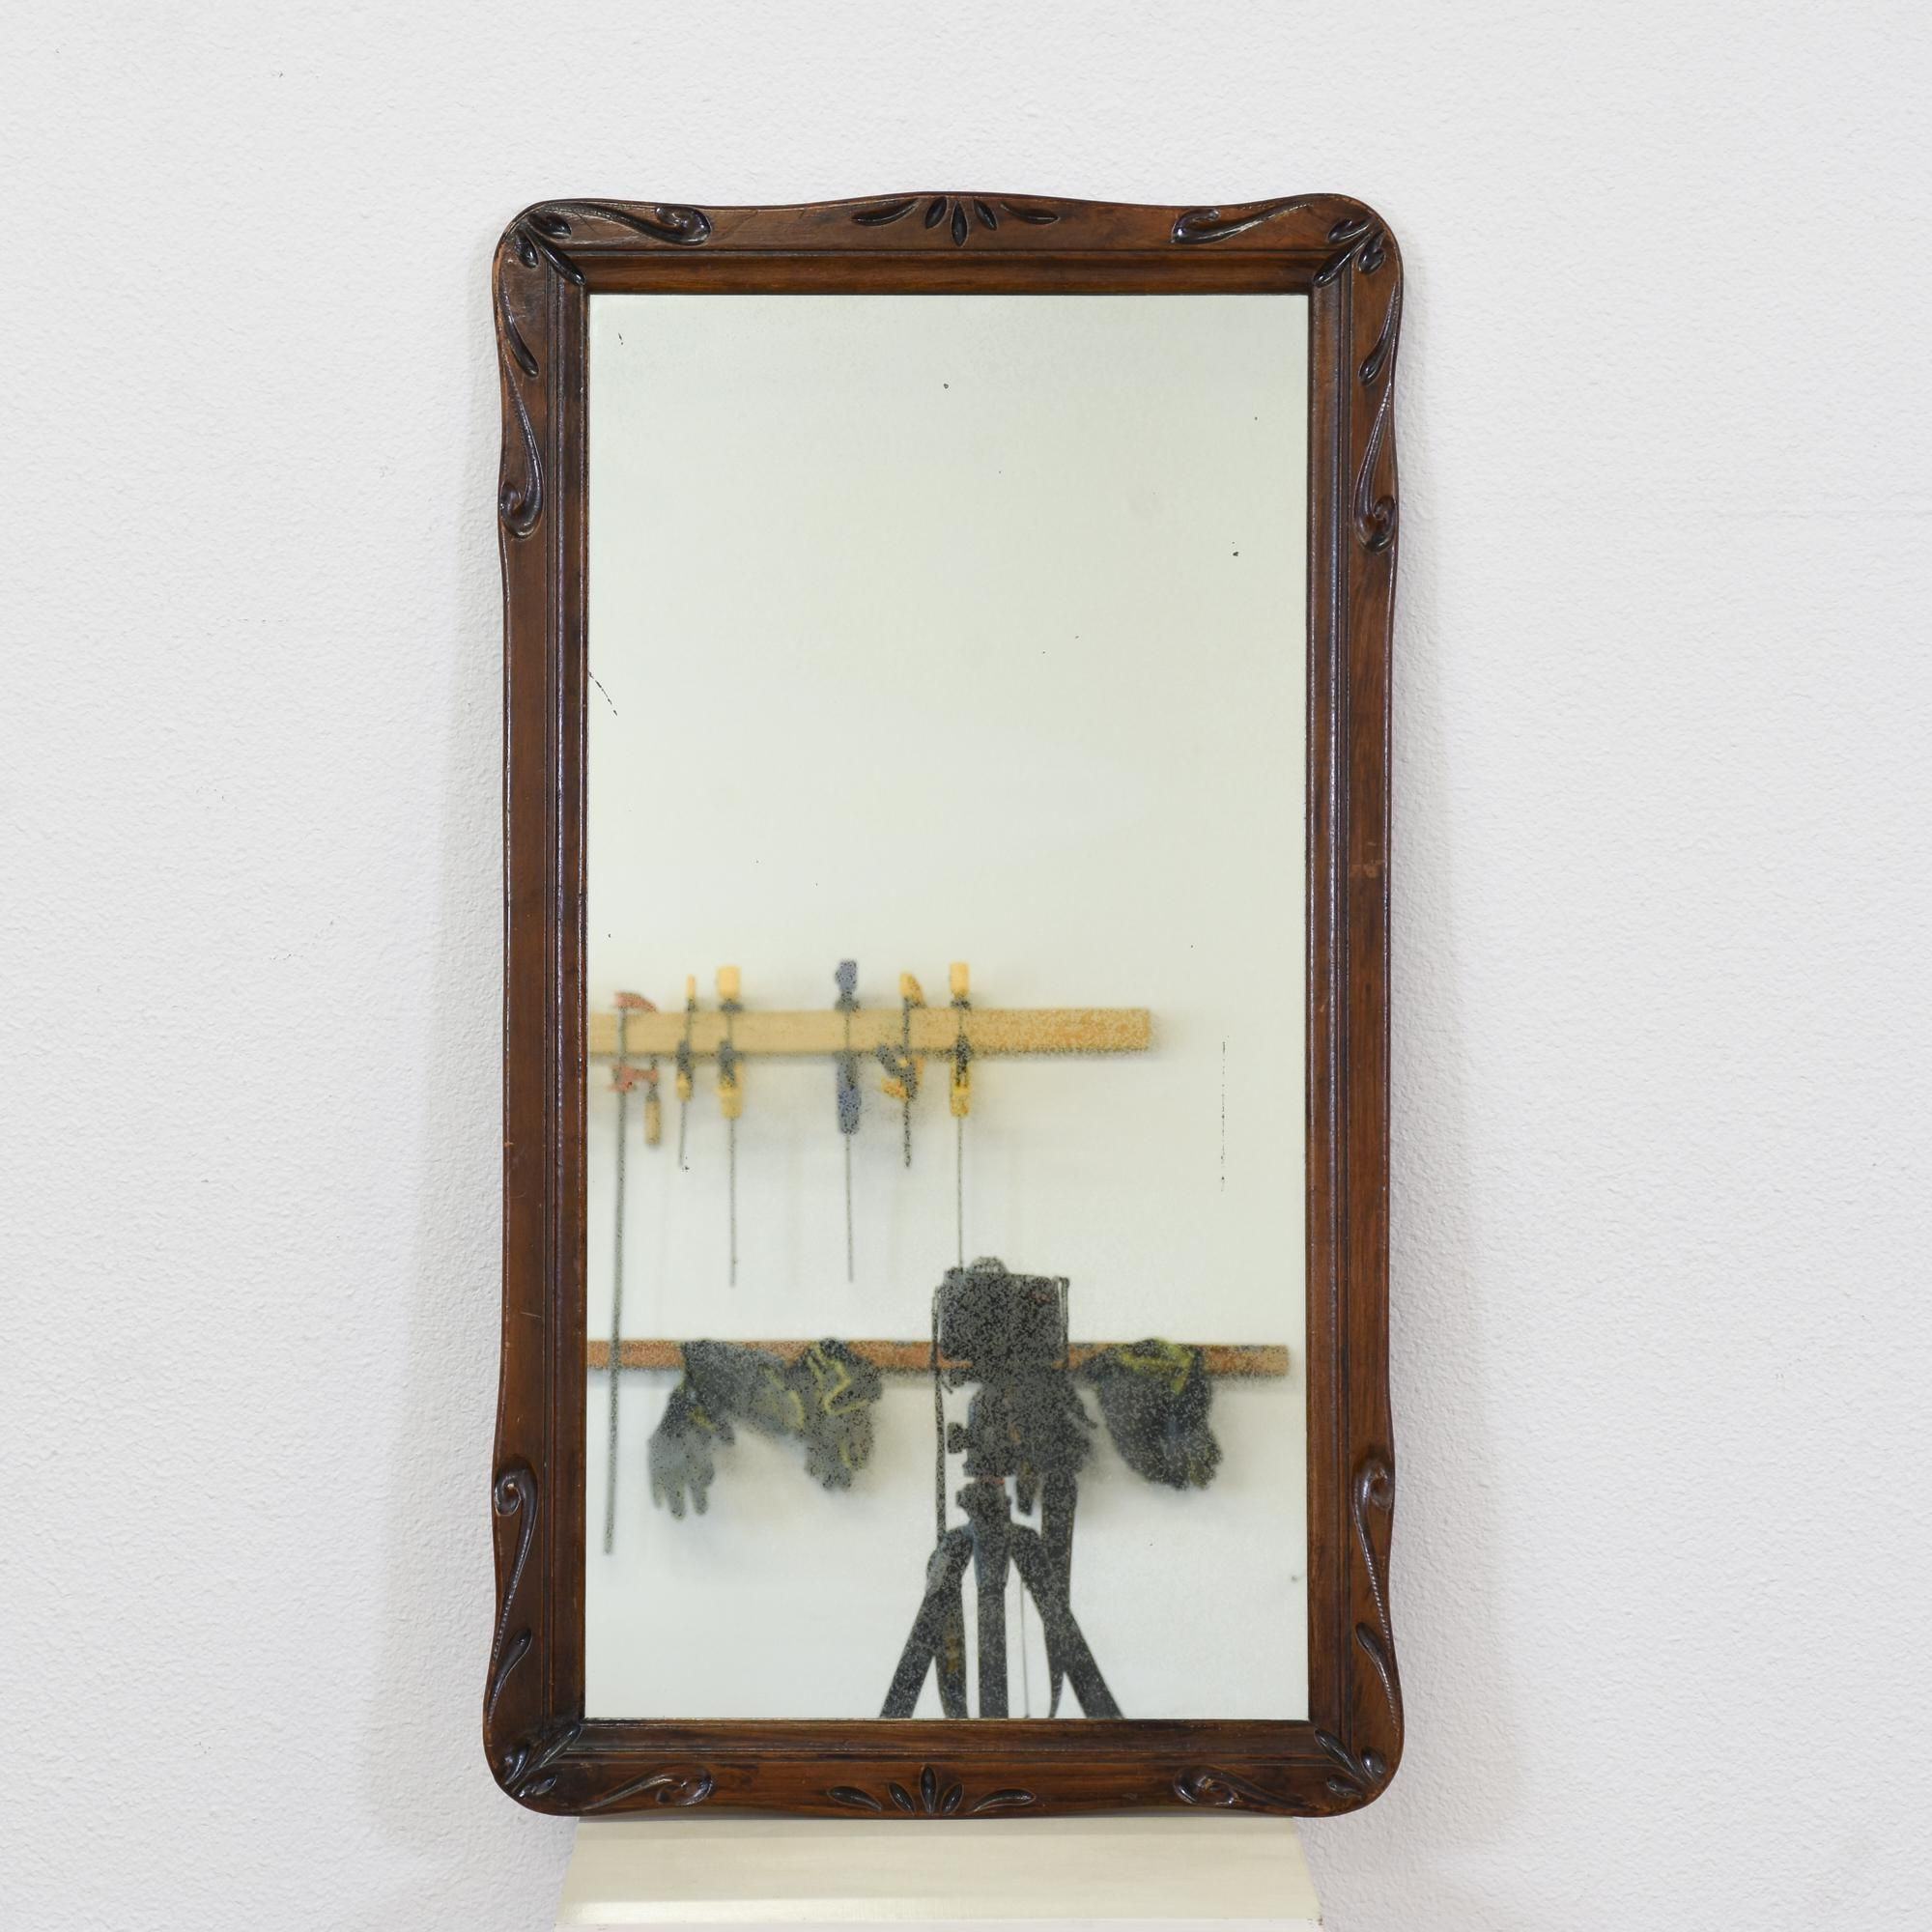 This Antique Mirror Is Featured In A Solid Wood With A Glossy Dark